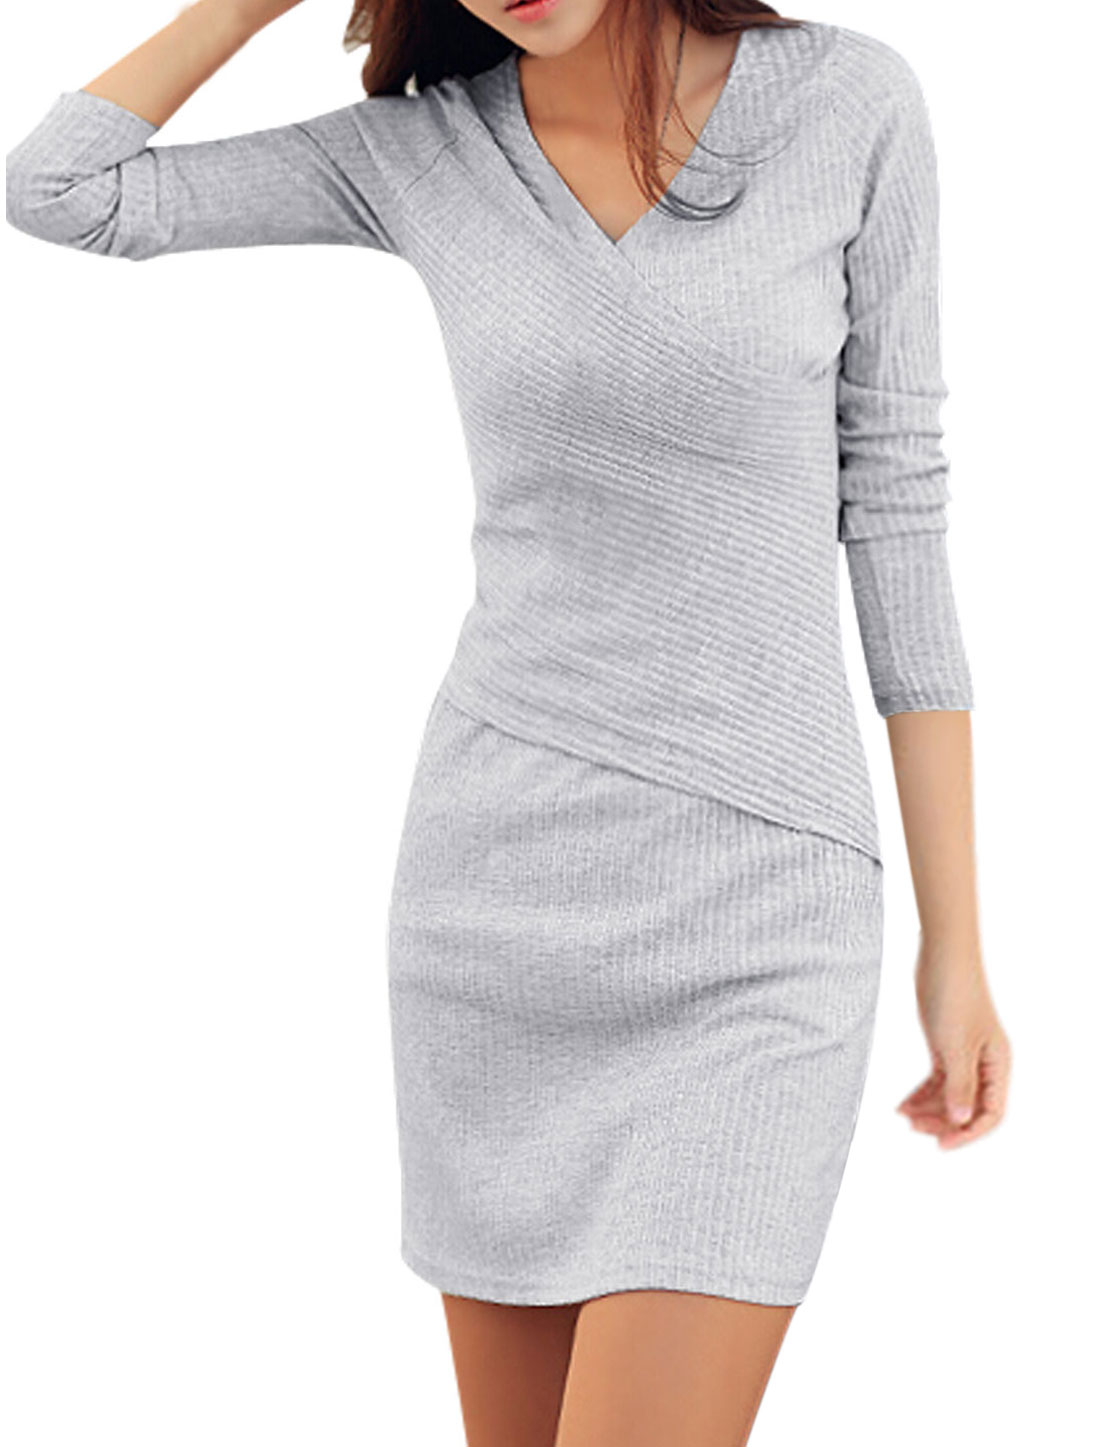 Ladies Full Sleeves Slipover Closed Fit Light Gray Knit Sheath Dress S